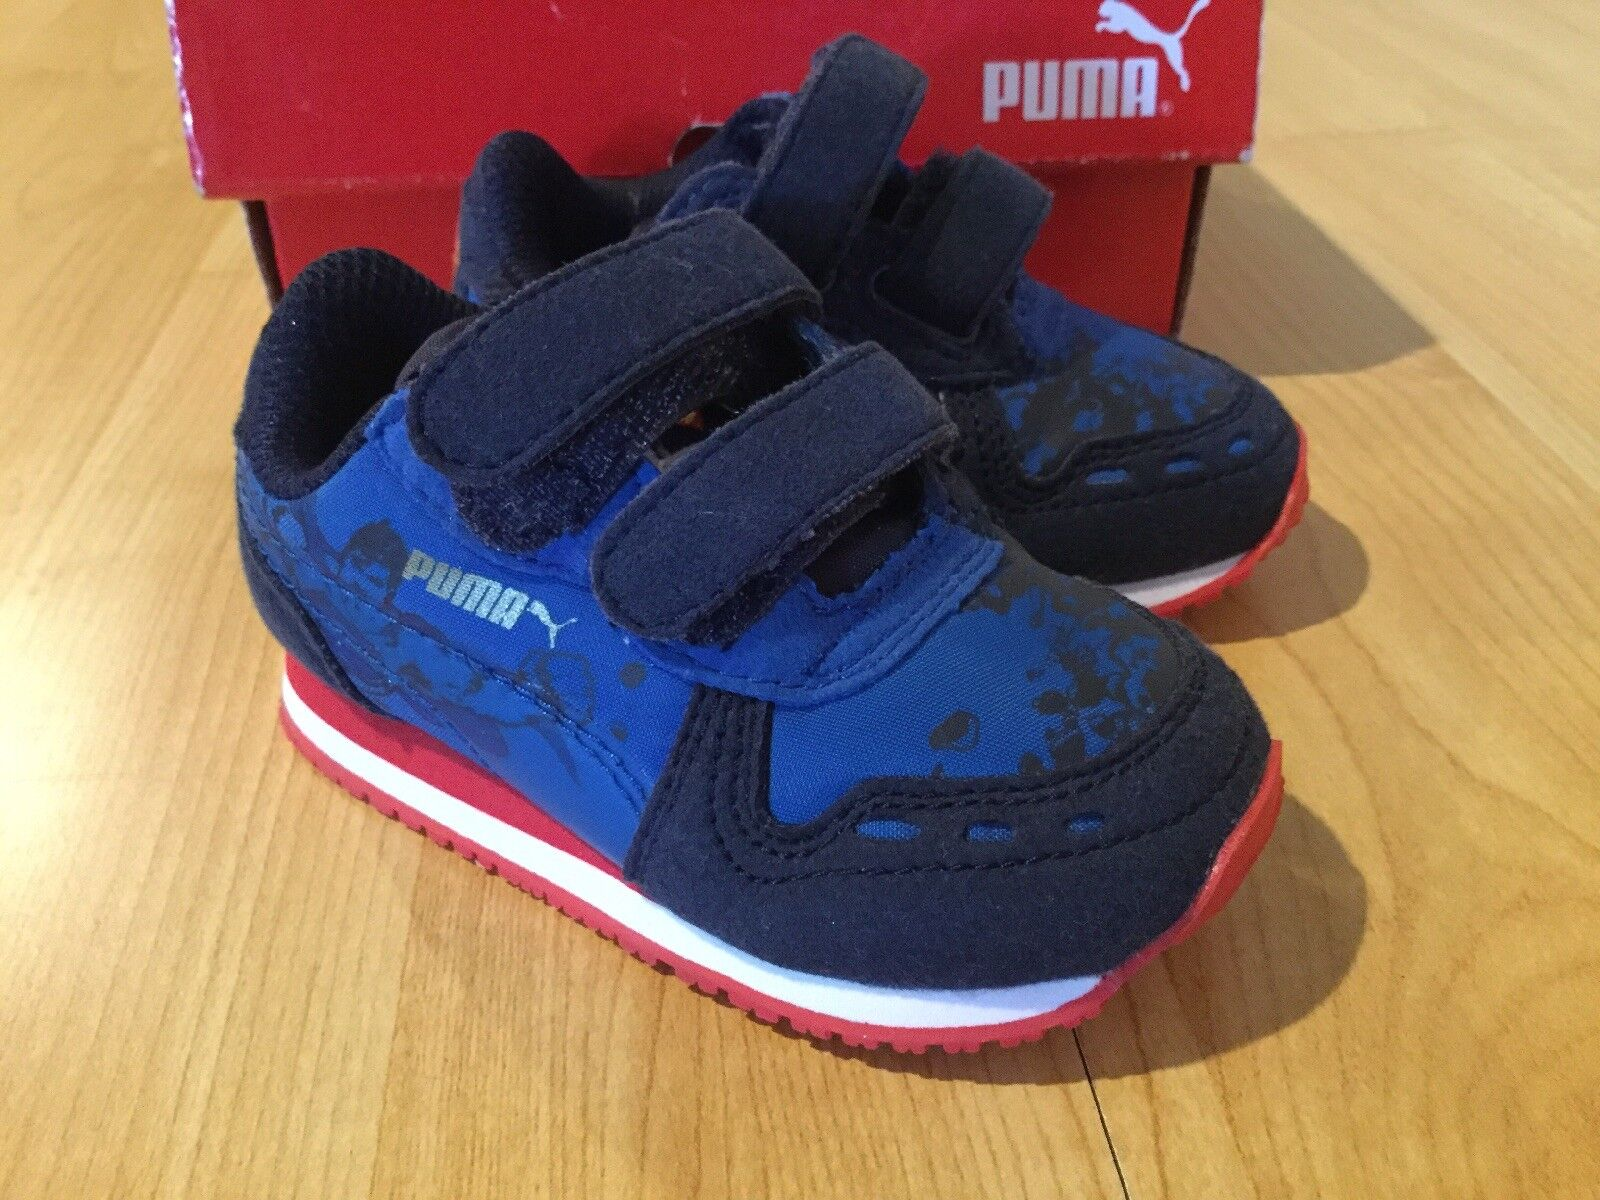 NEW! PUMA CABANA RACER SUPERMAN JR BABY/TODDLER SNEAKERS SHOES SIZE 4C BLUE/RED